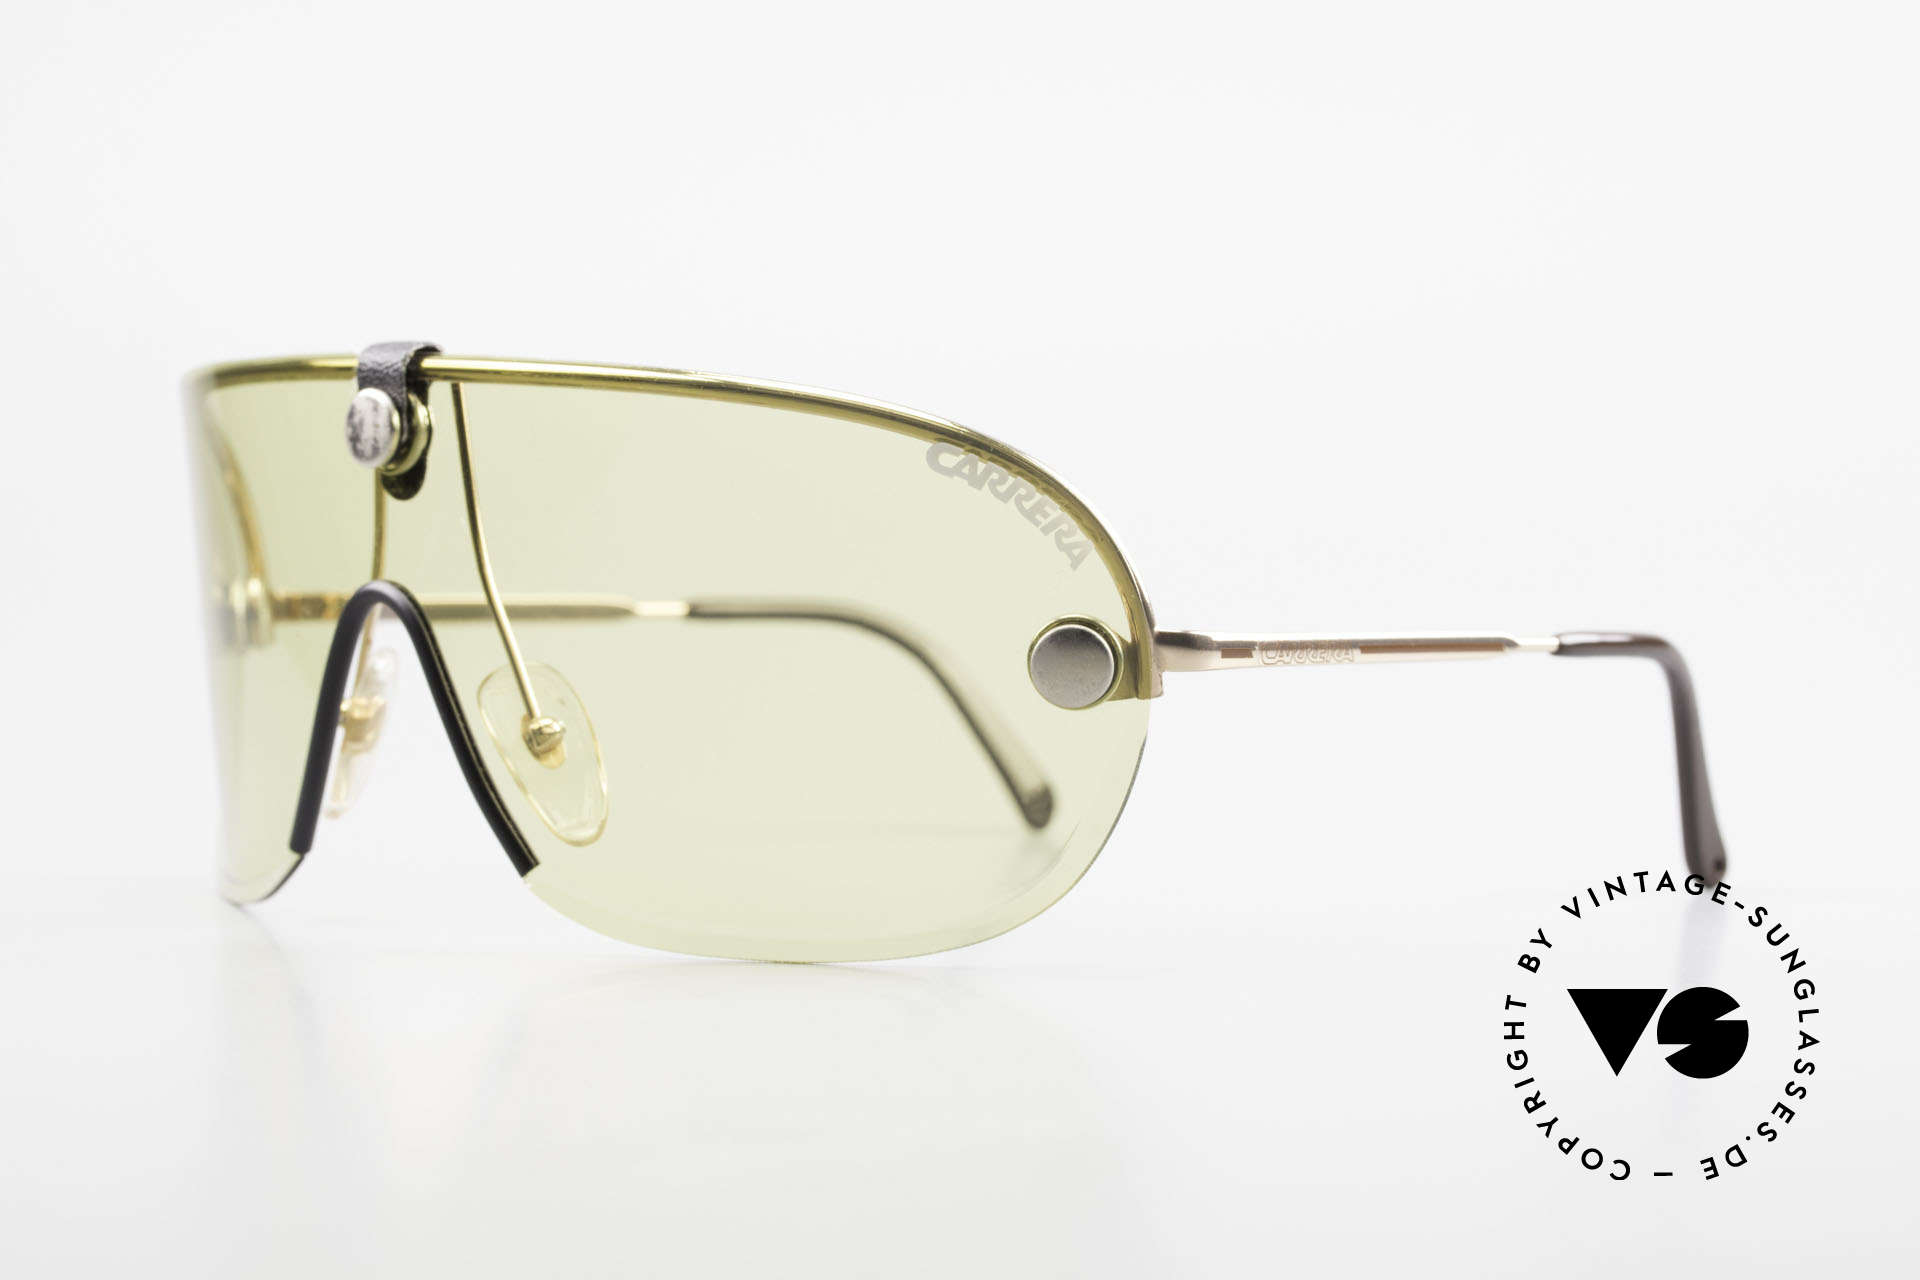 Carrera 5418 All Weather Sunglasses Polar, yellow (kalichrome) intensify light and increase contrast, Made for Men